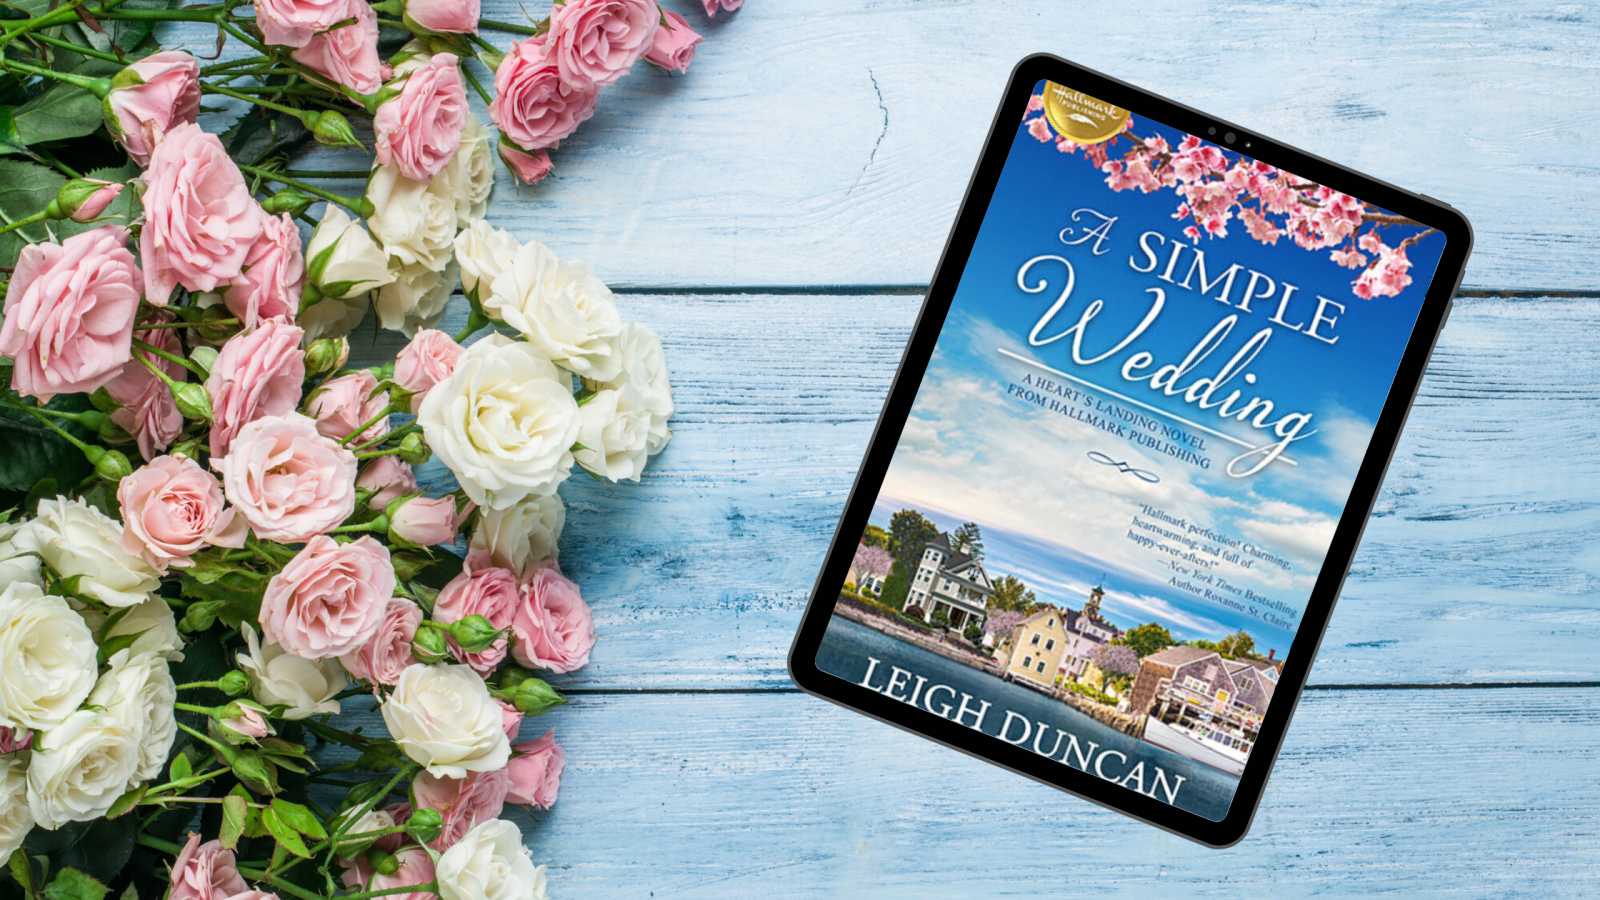 A Simple Wedding by Leigh Duncan Hallmark Publishing